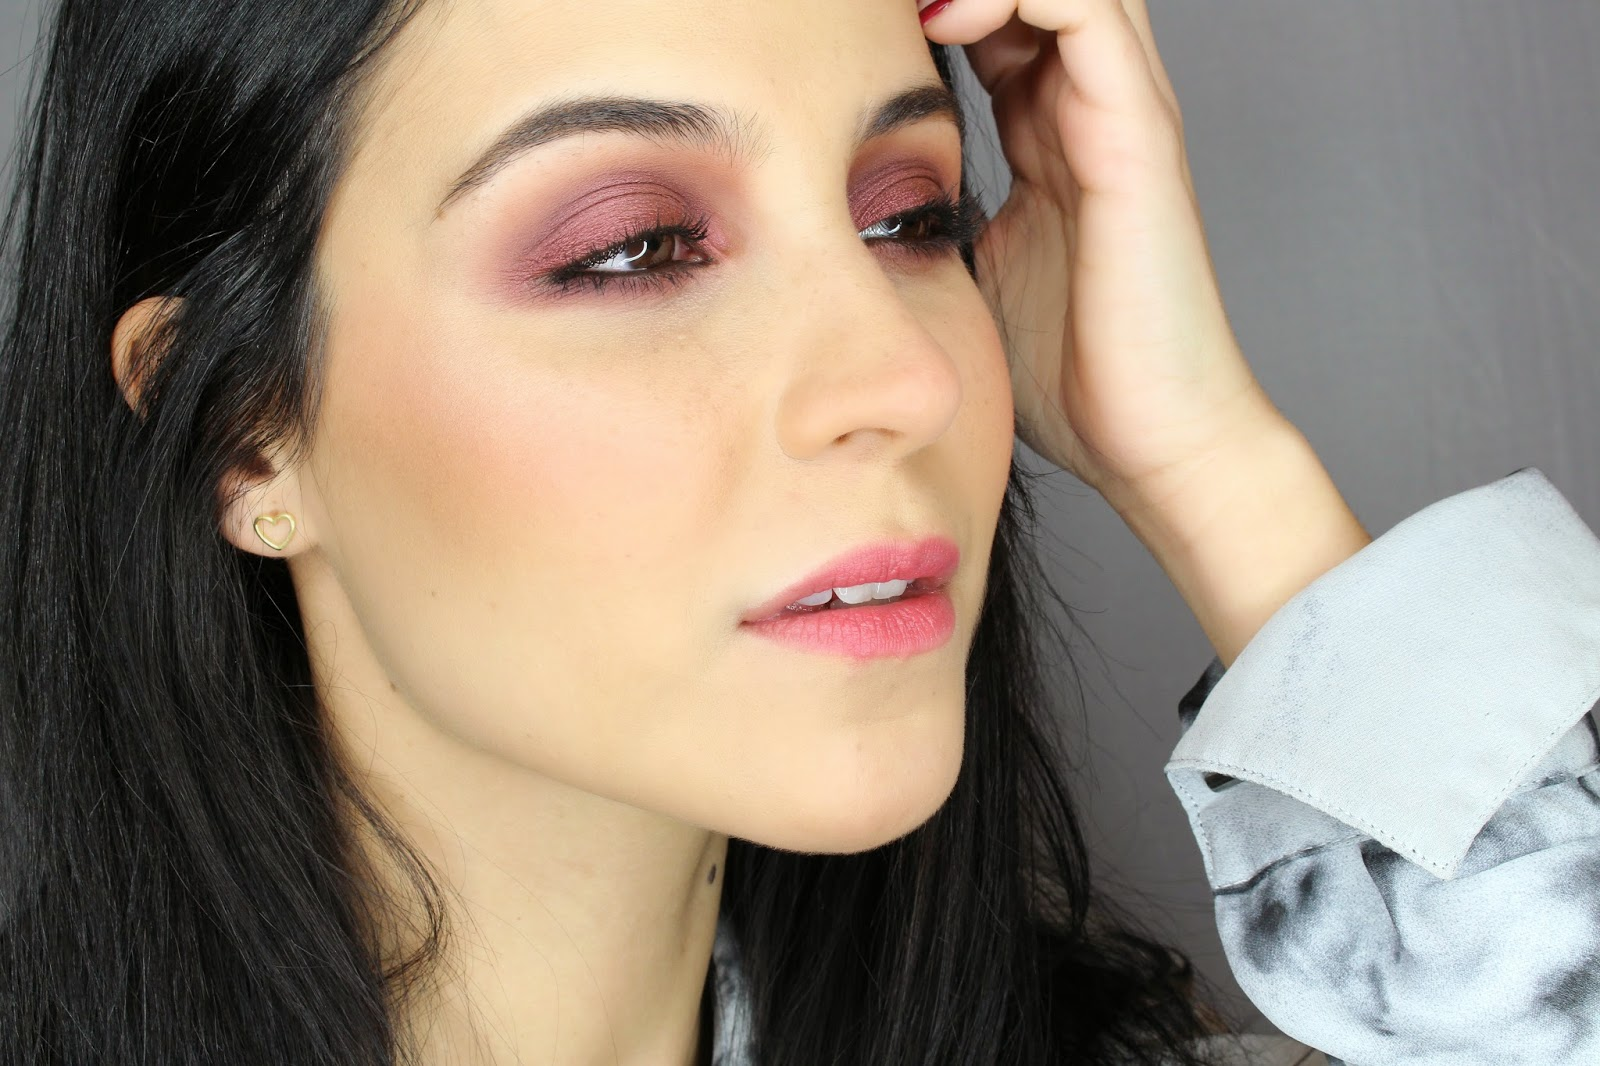 Marsala Inspired Makeup Video/Tutorial #DuelodeBrochas